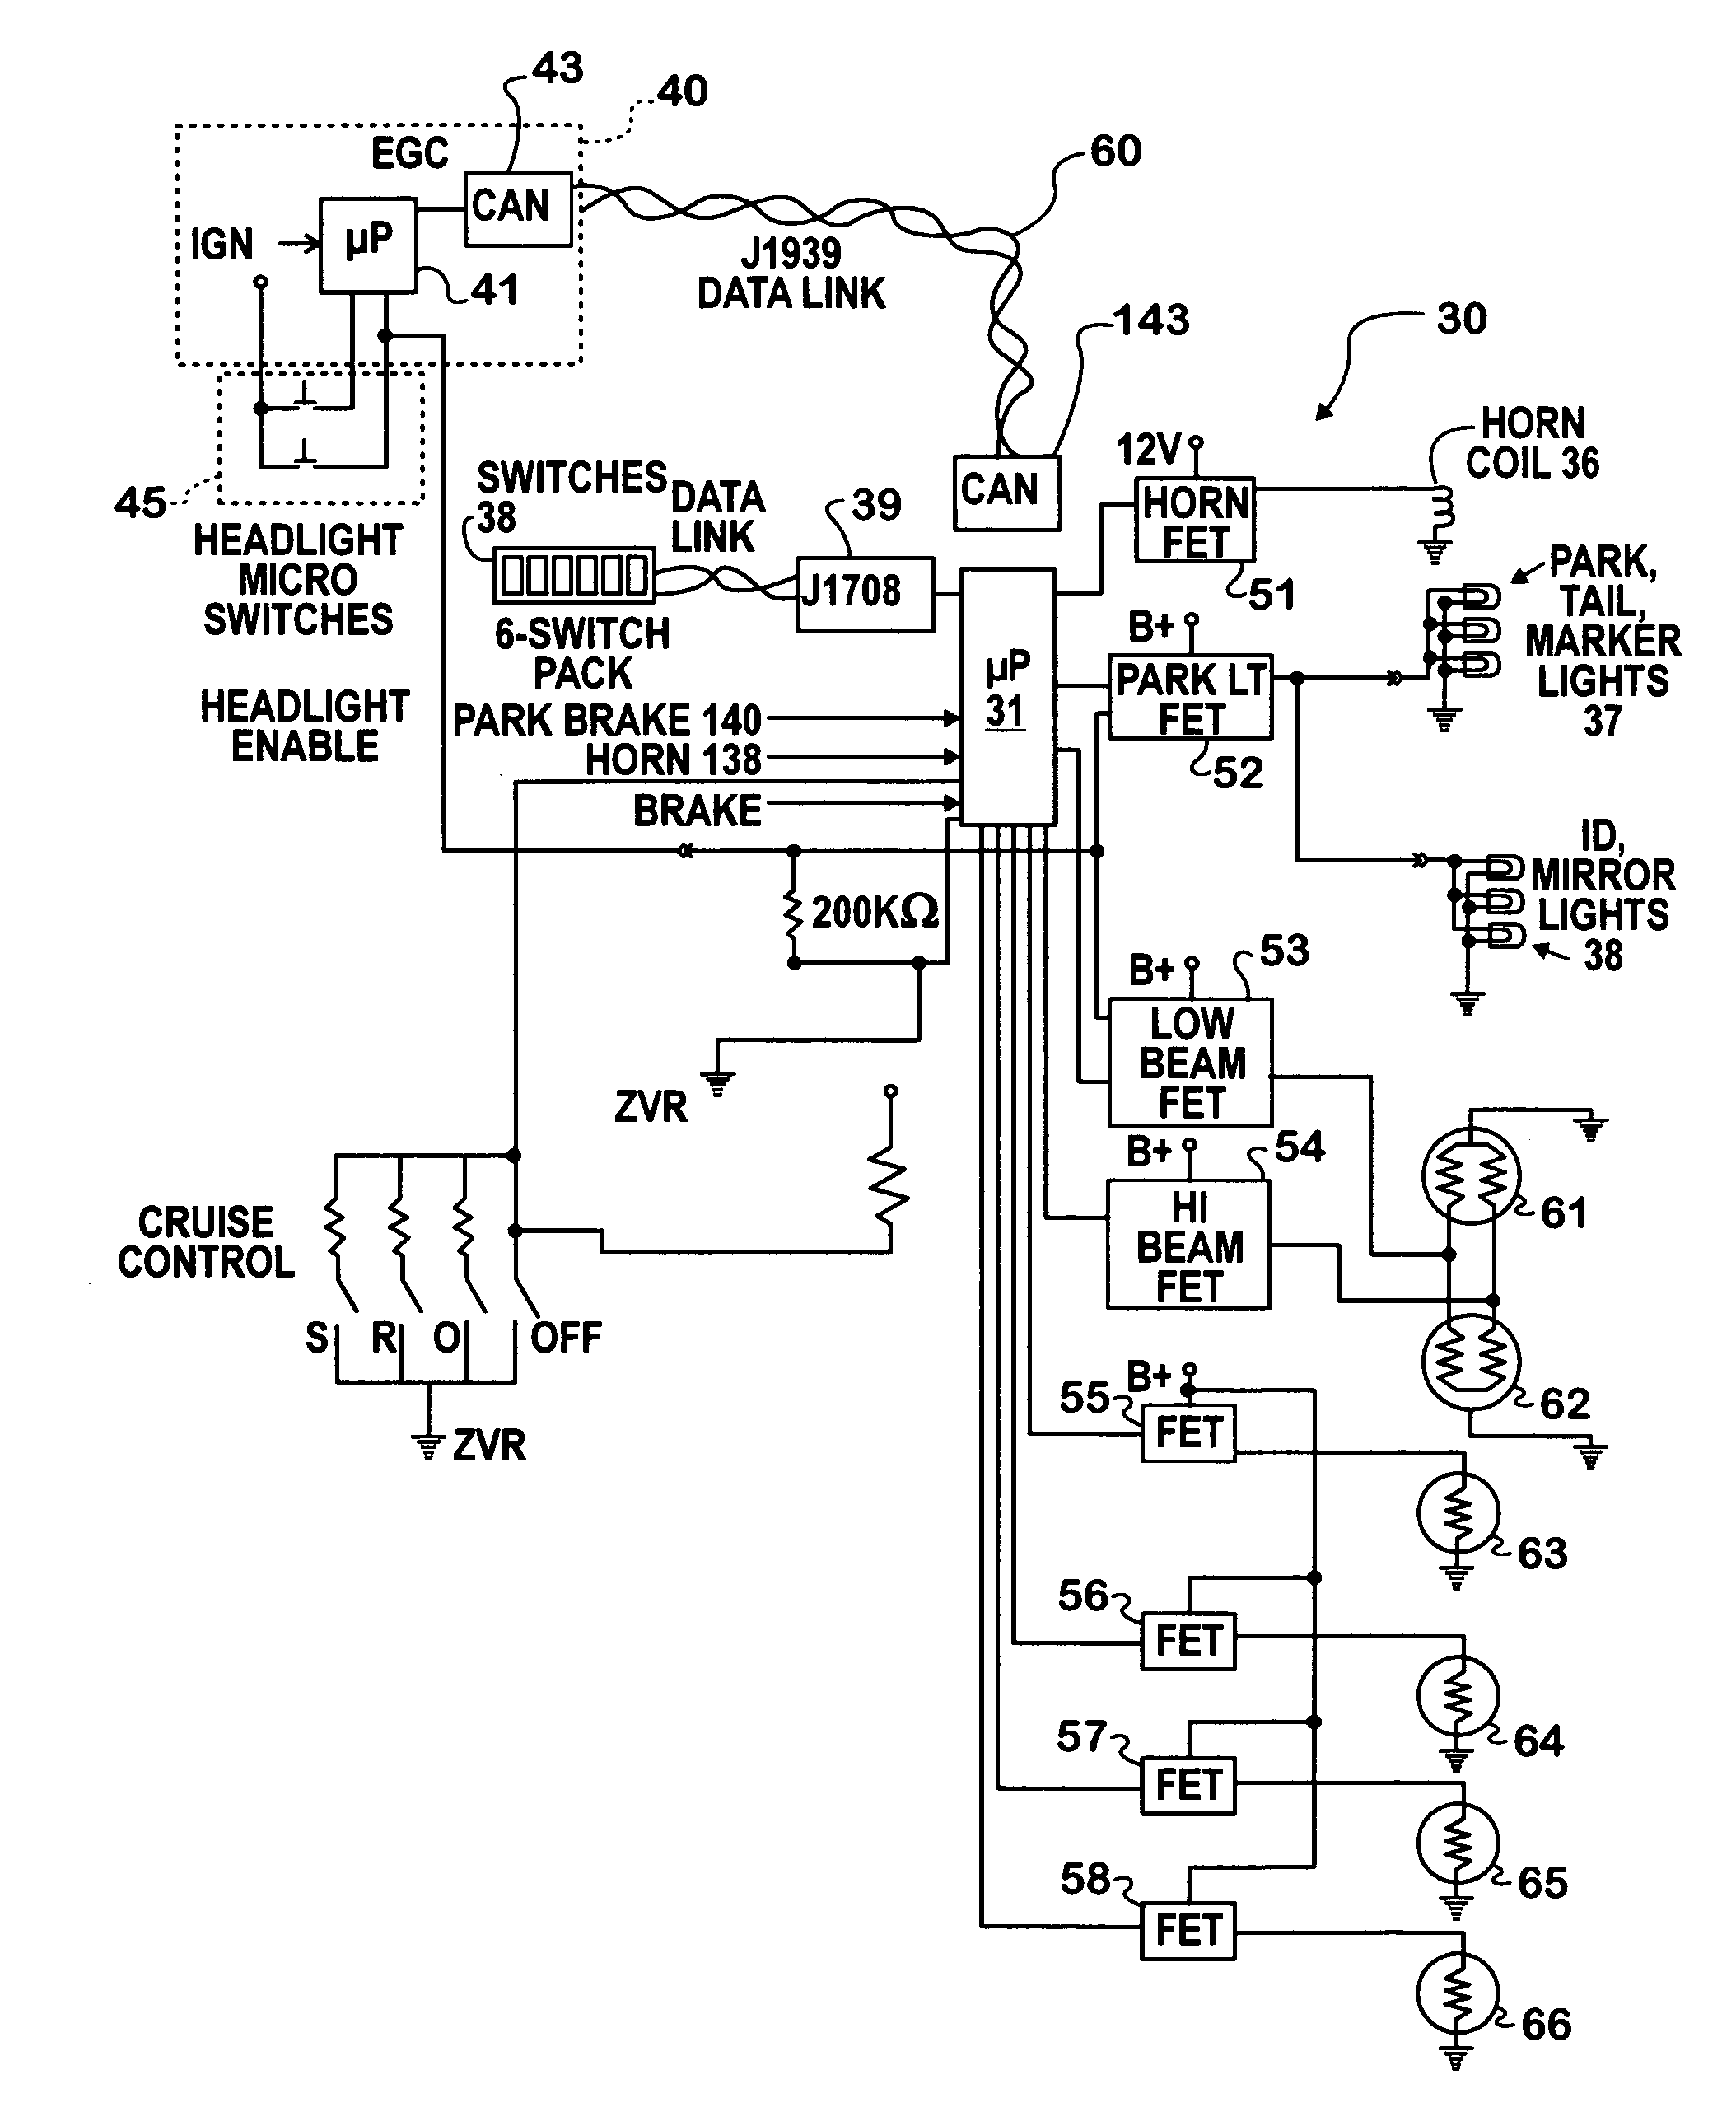 Wiring Diagram Additionally 2007 International 4300 Fuse Box Diagram